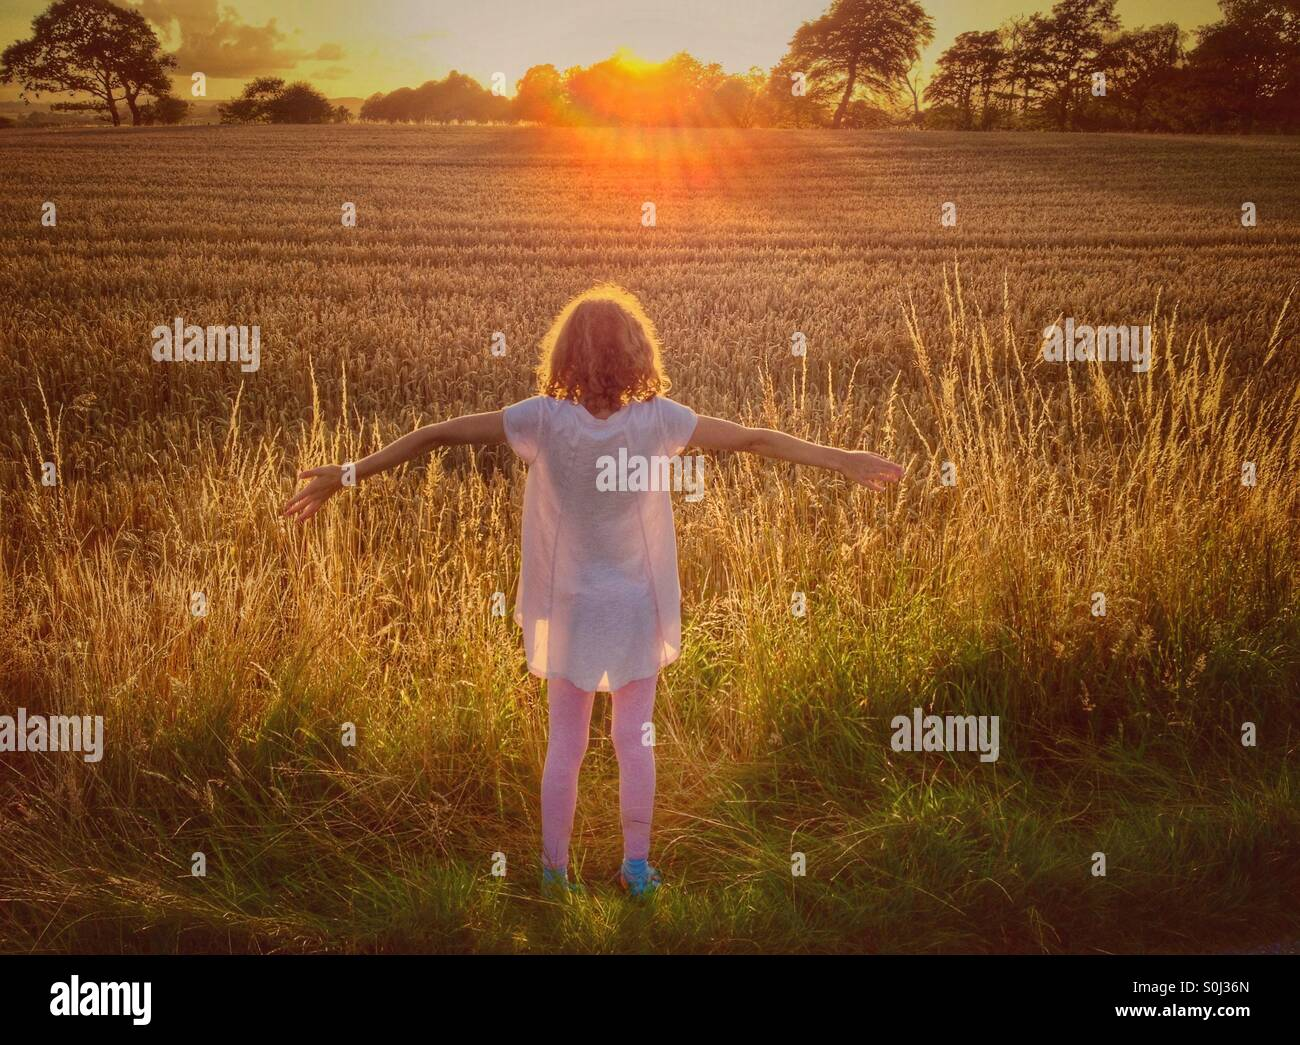 Young girl welcoming the setting sun above a ripe wheat field - Stock Image